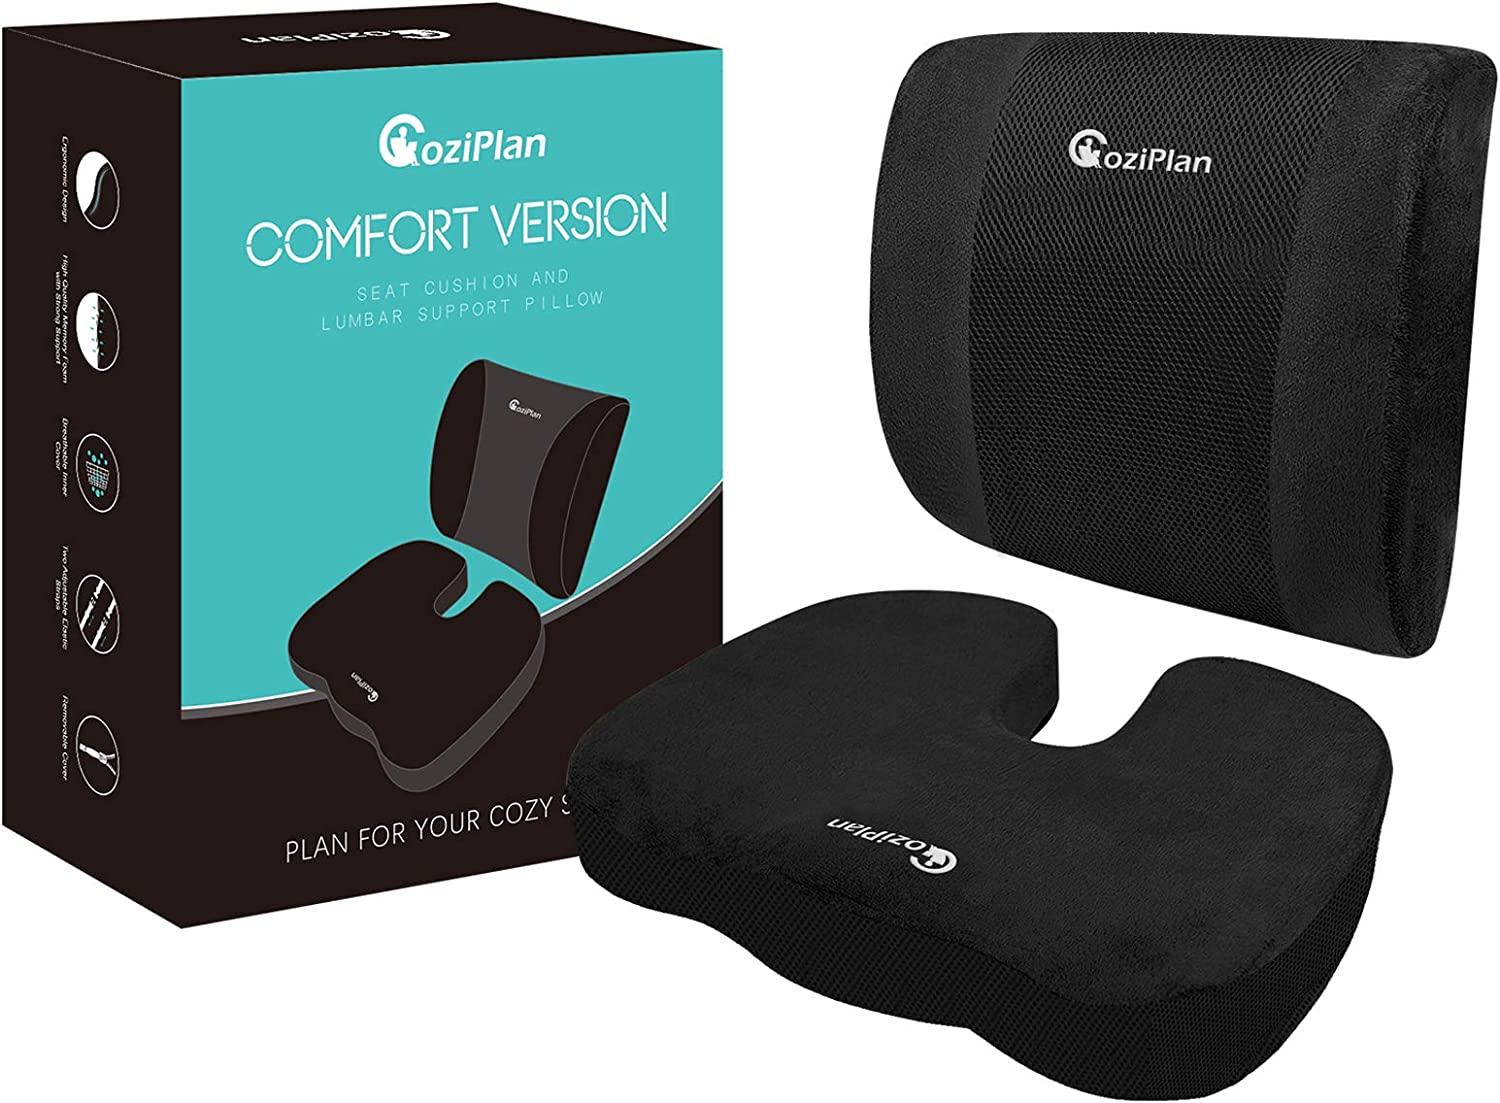 CoziPlan Seat Cushion and Lumbar Support Pillow - Comfort Version, Memory Foam Coccyx Cushion and Back Cushion for Office Chair